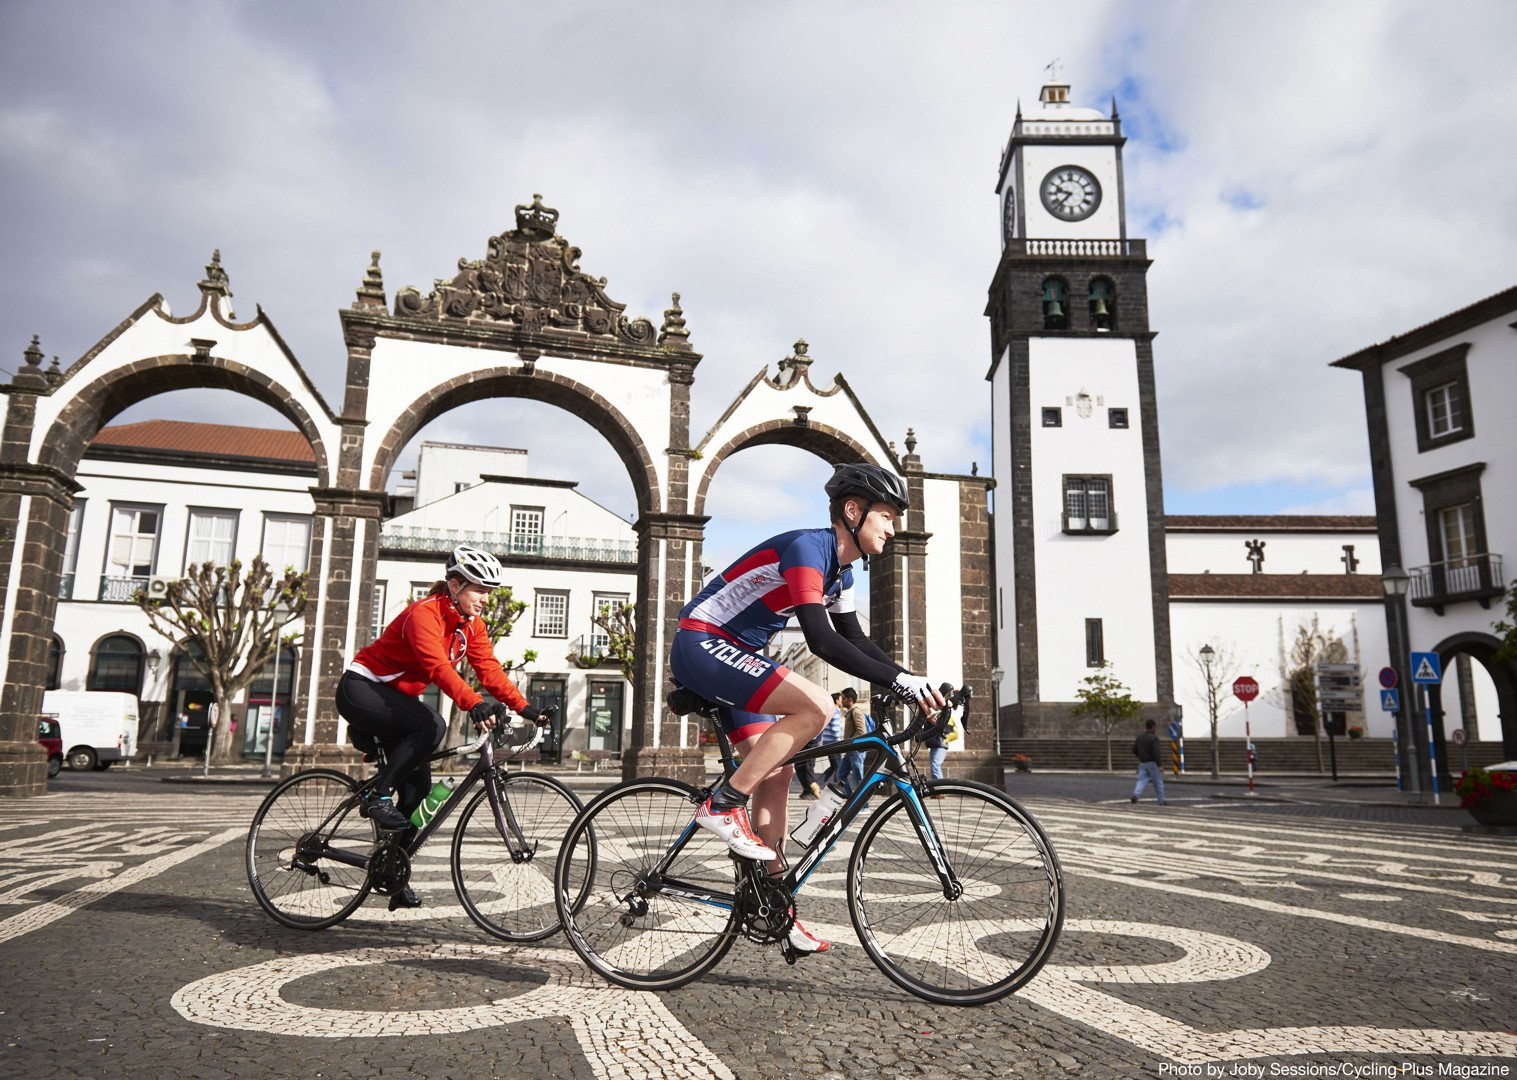 road-cycling-tour-in-the-azores-sao-miguel-skedaddle.JPG - The Azores - Lost World of Sao Miguel - Guided Road Cycling Holiday - Road Cycling